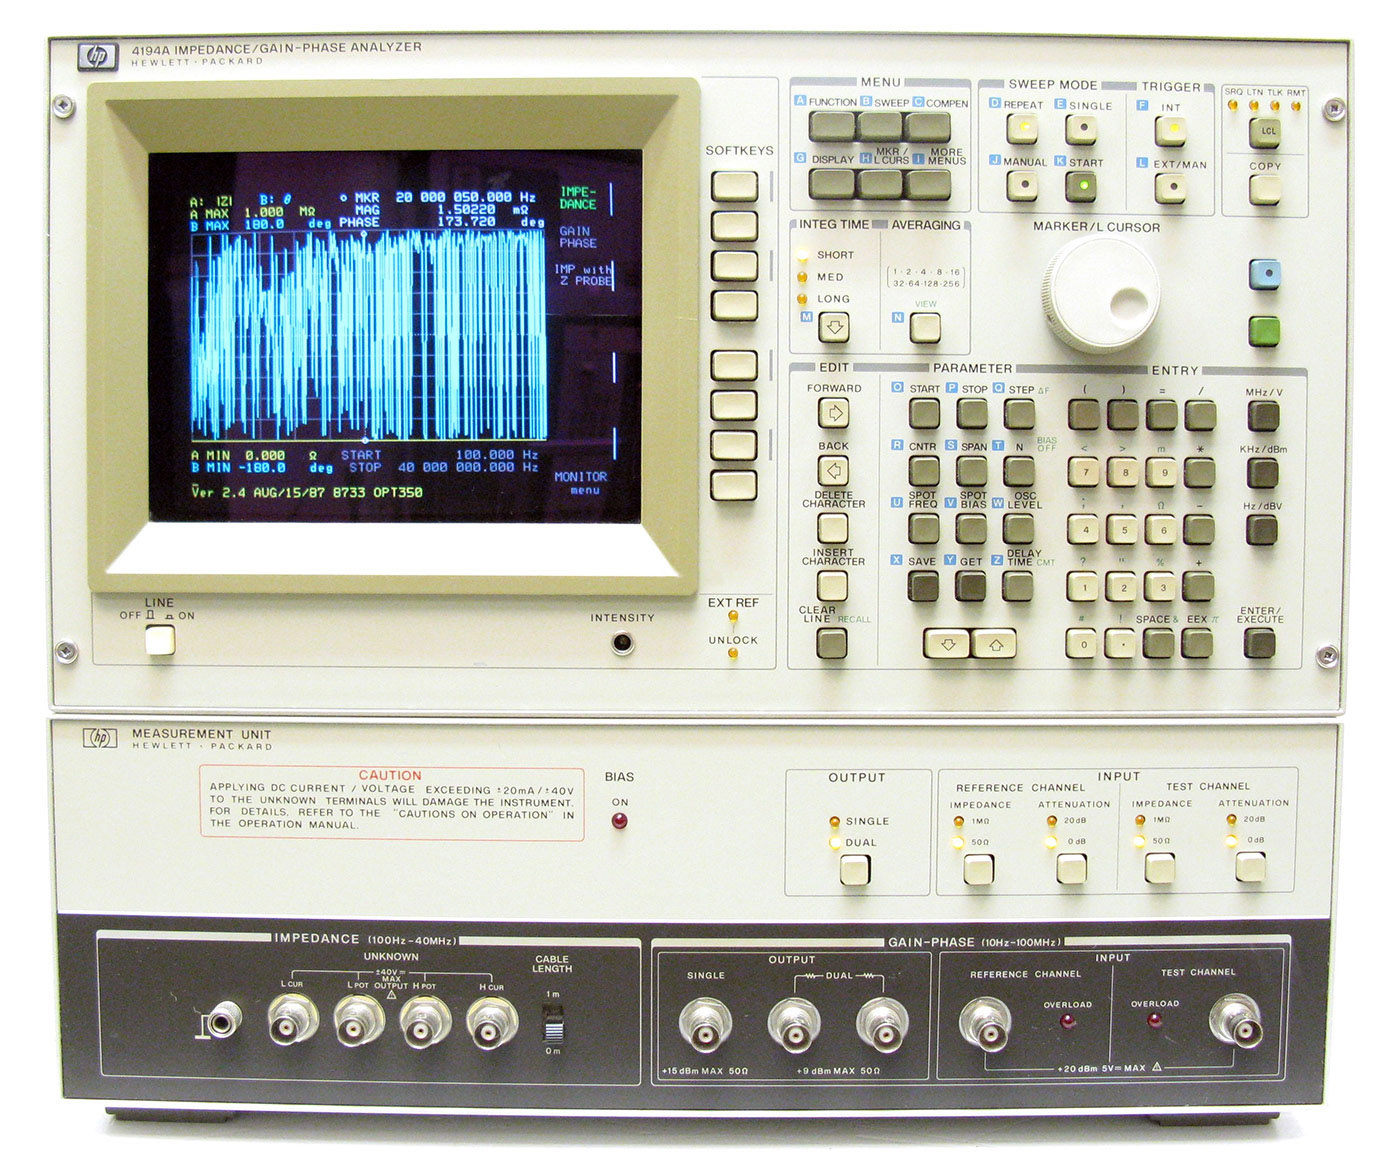 Impedance Analyzer Rental